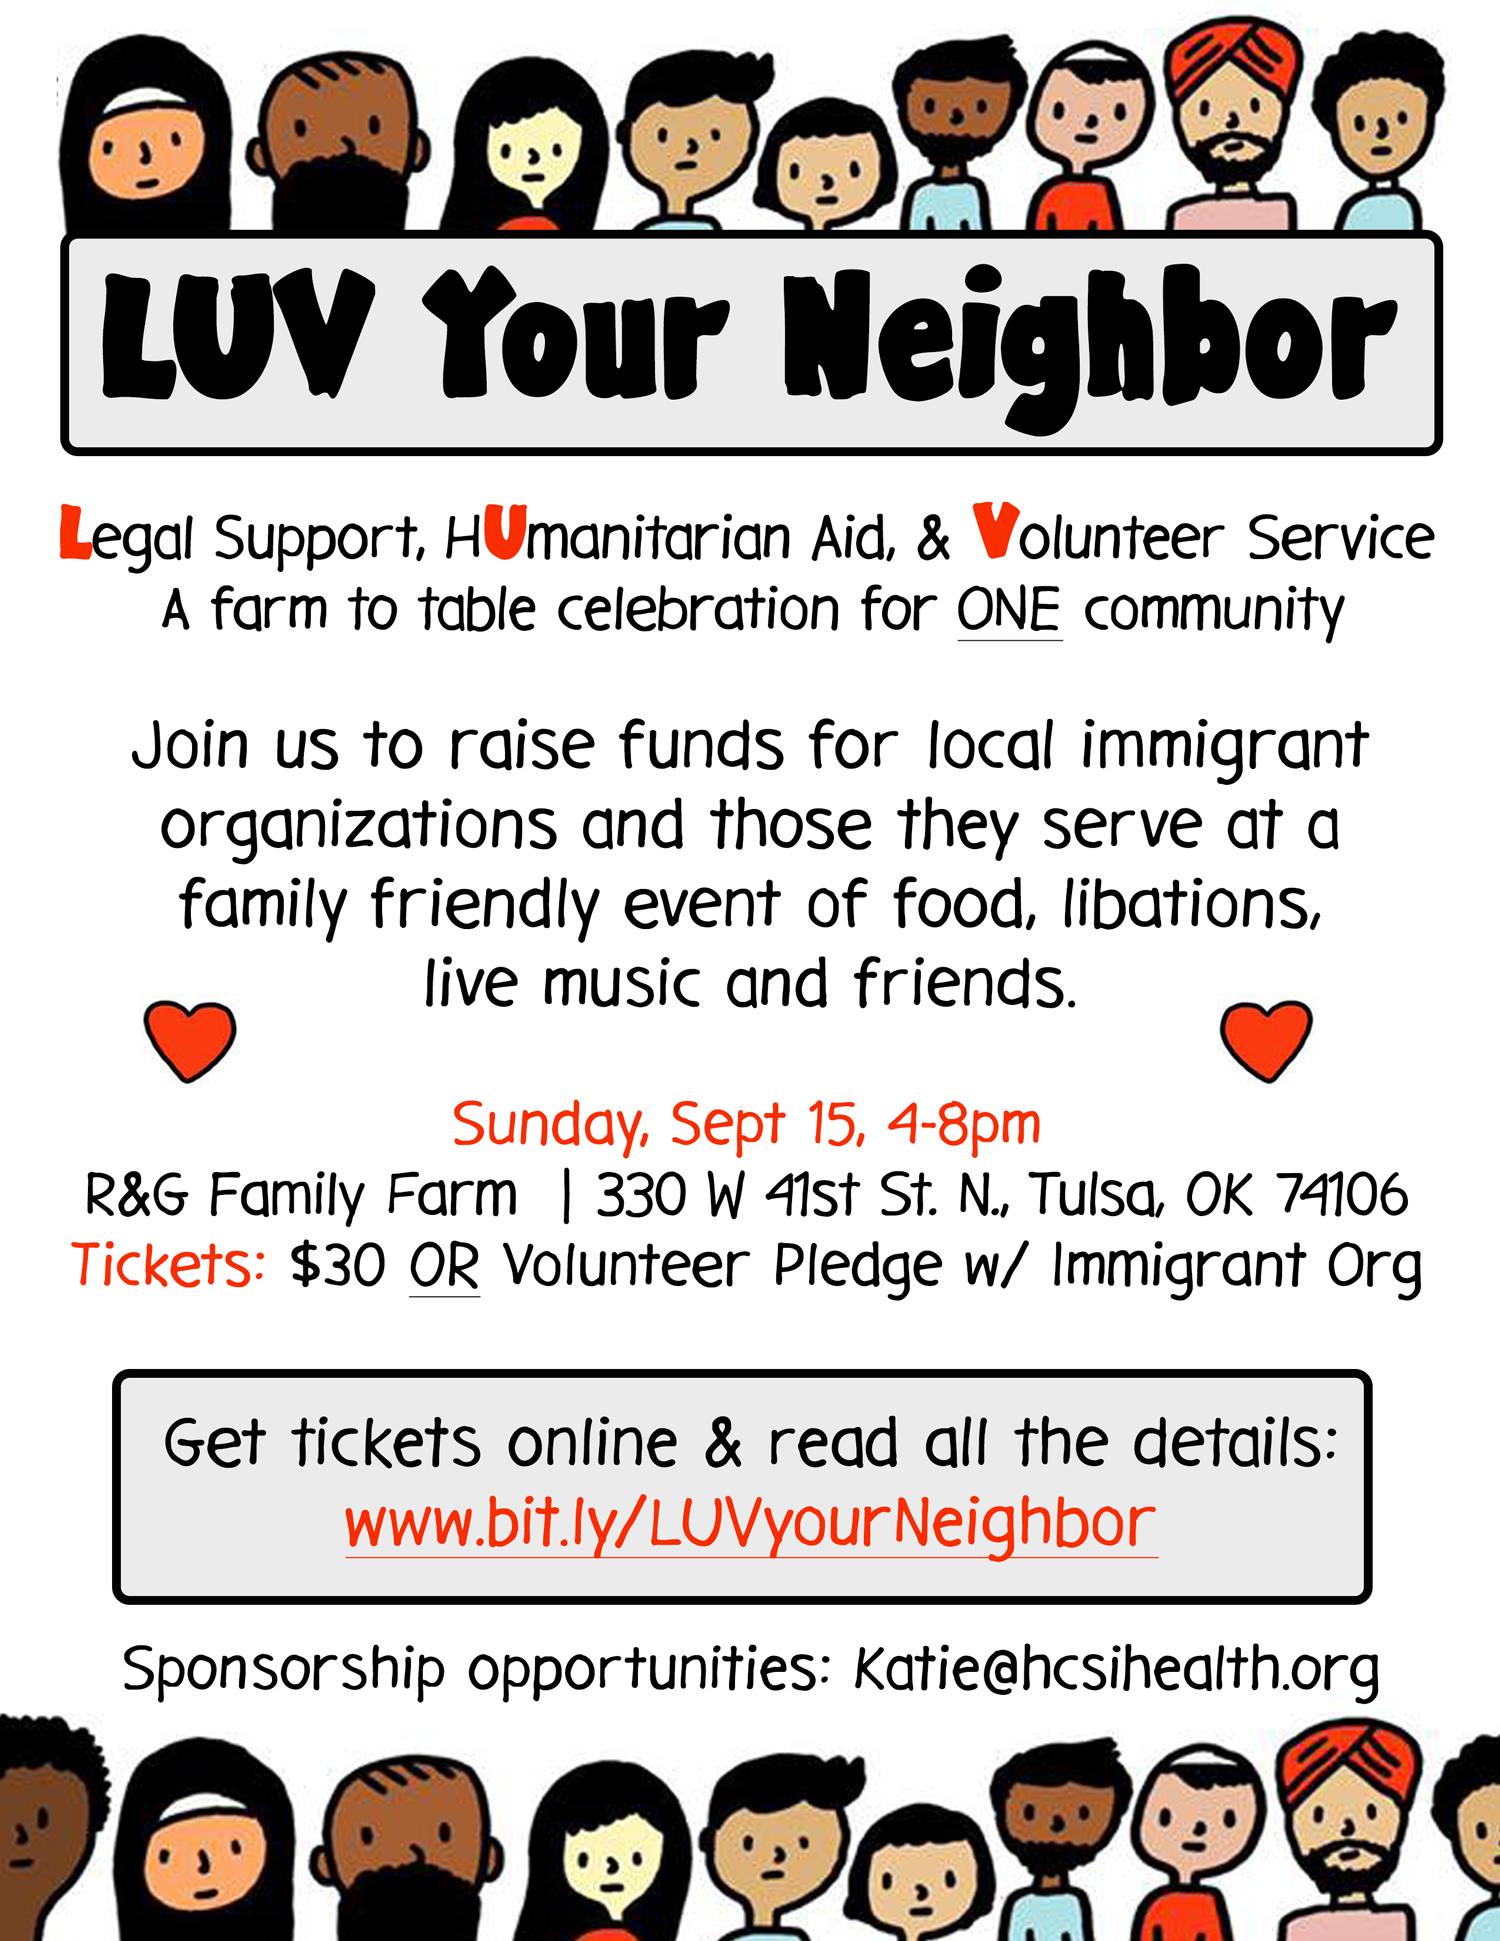 DAOK-Event-LUV-Your-Neighbor-Flyer-Digital.png